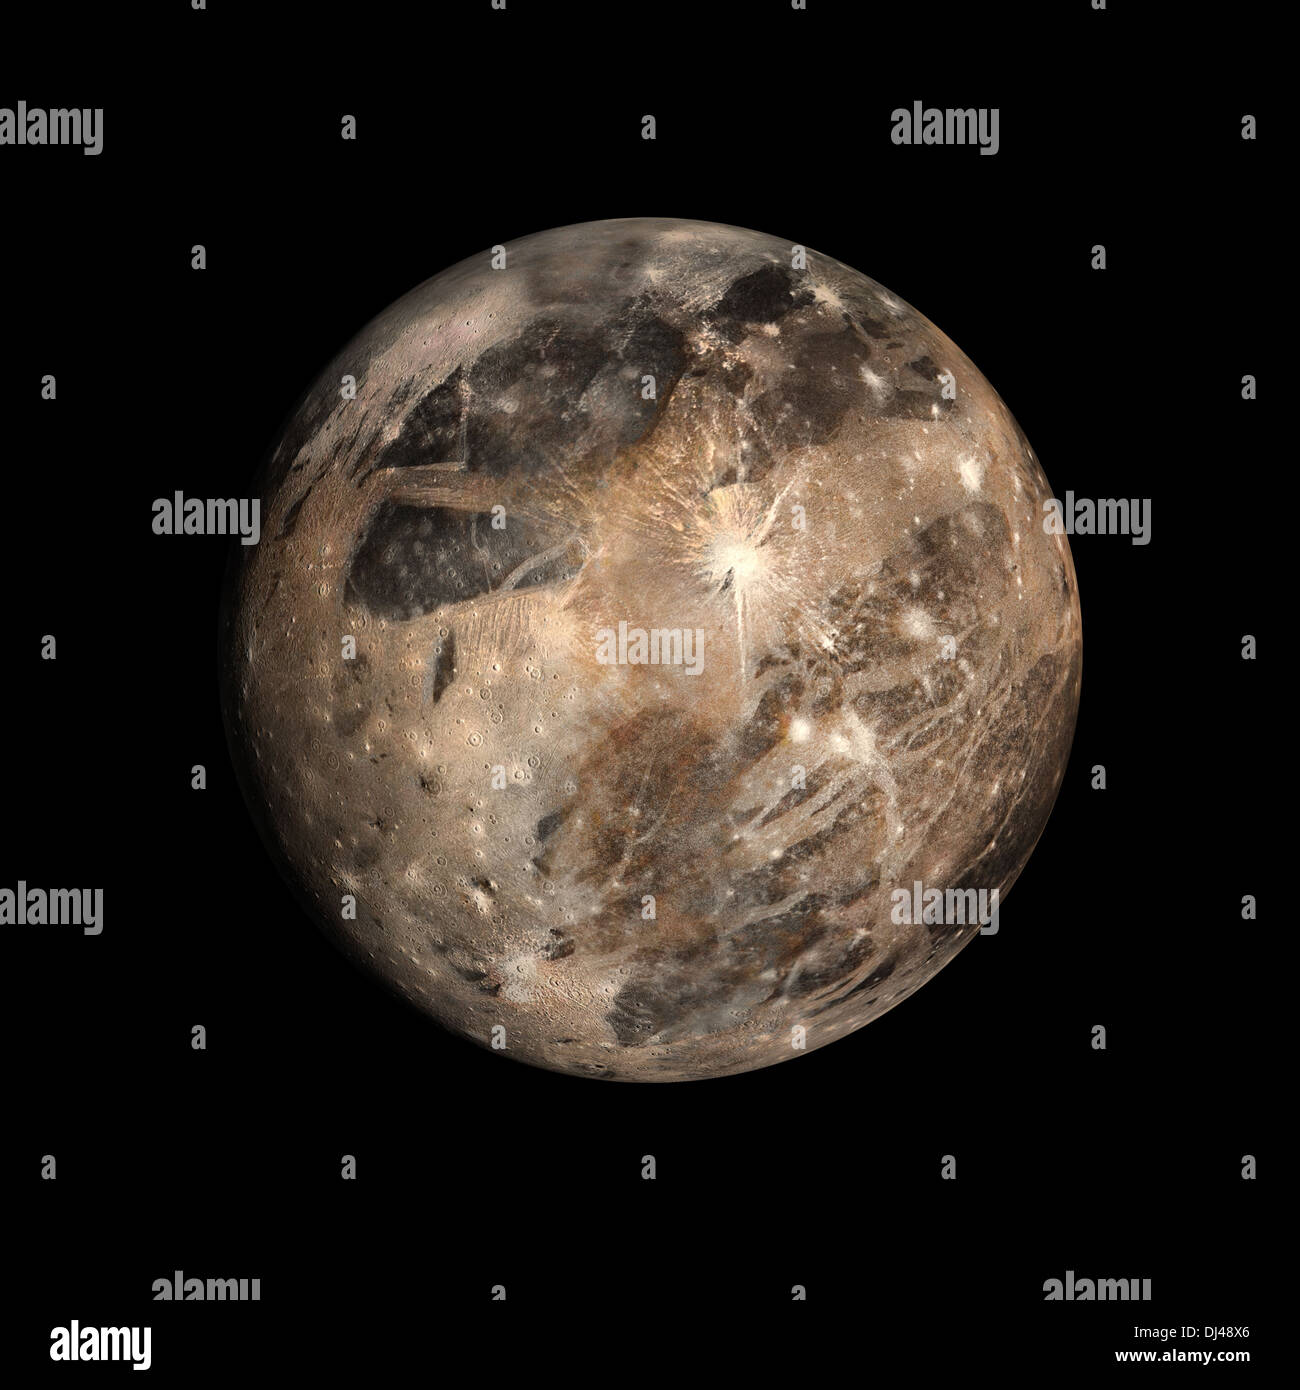 A rendered Image of the Jupitermoon Ganymede on a clean black background. - Stock Image